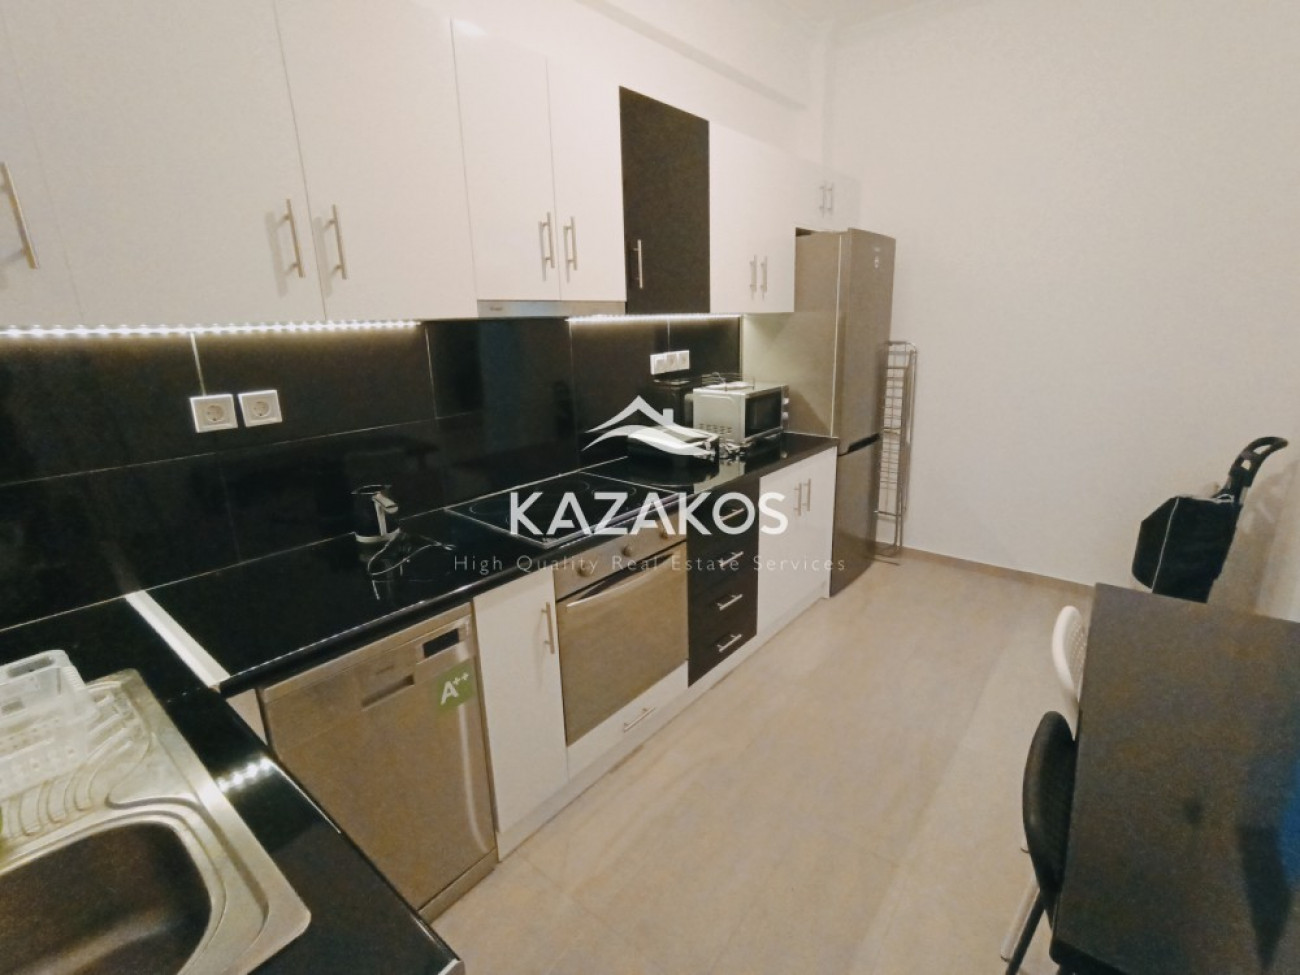 Apartment for Sale in Sepolia, Athens City Center, Greece